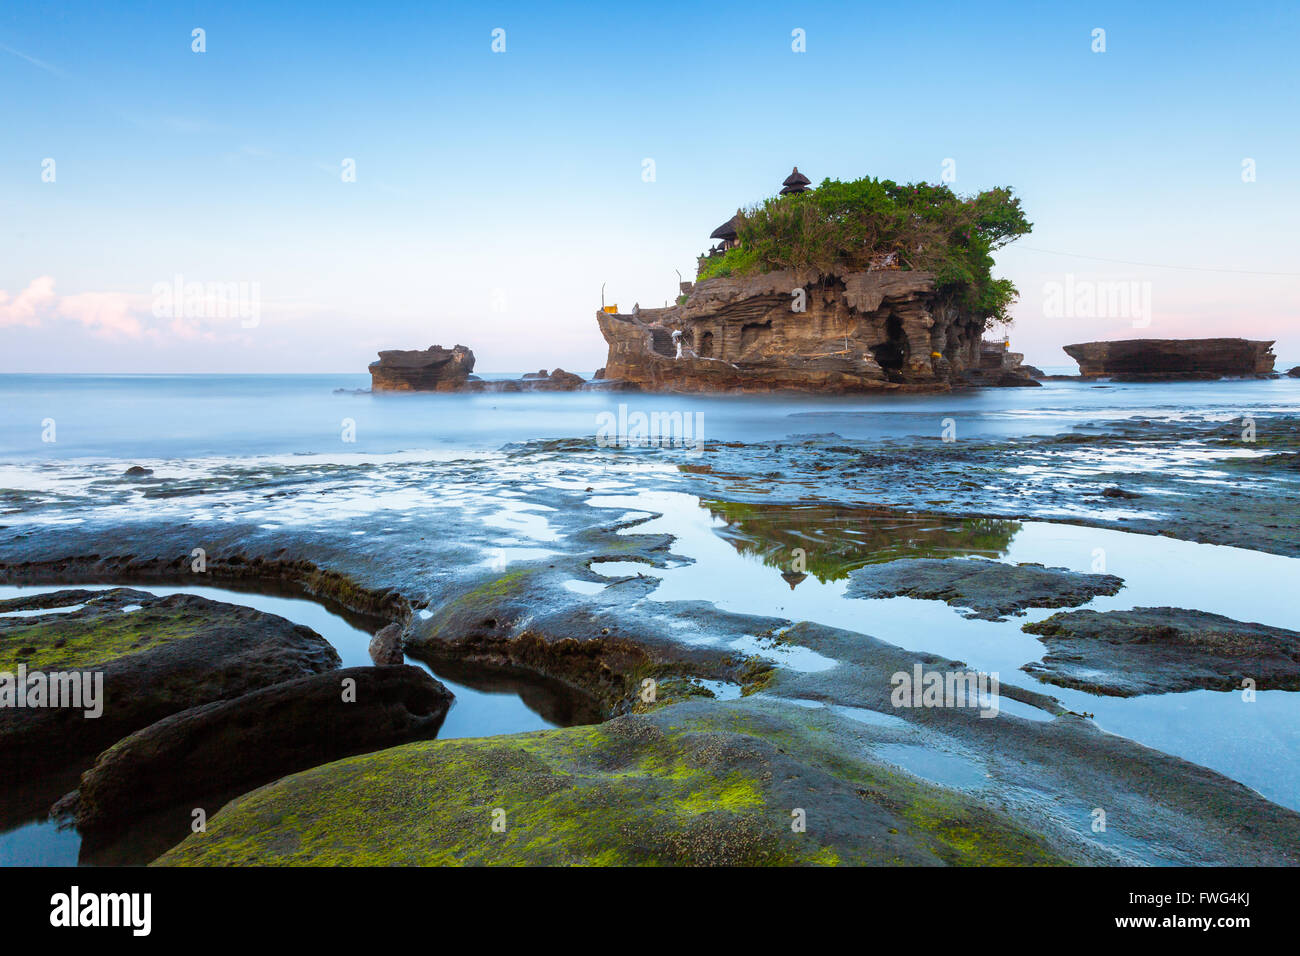 Pura Tanah Lot in the morning, famous ocean temple in Bali, Indonesia. Stock Photo